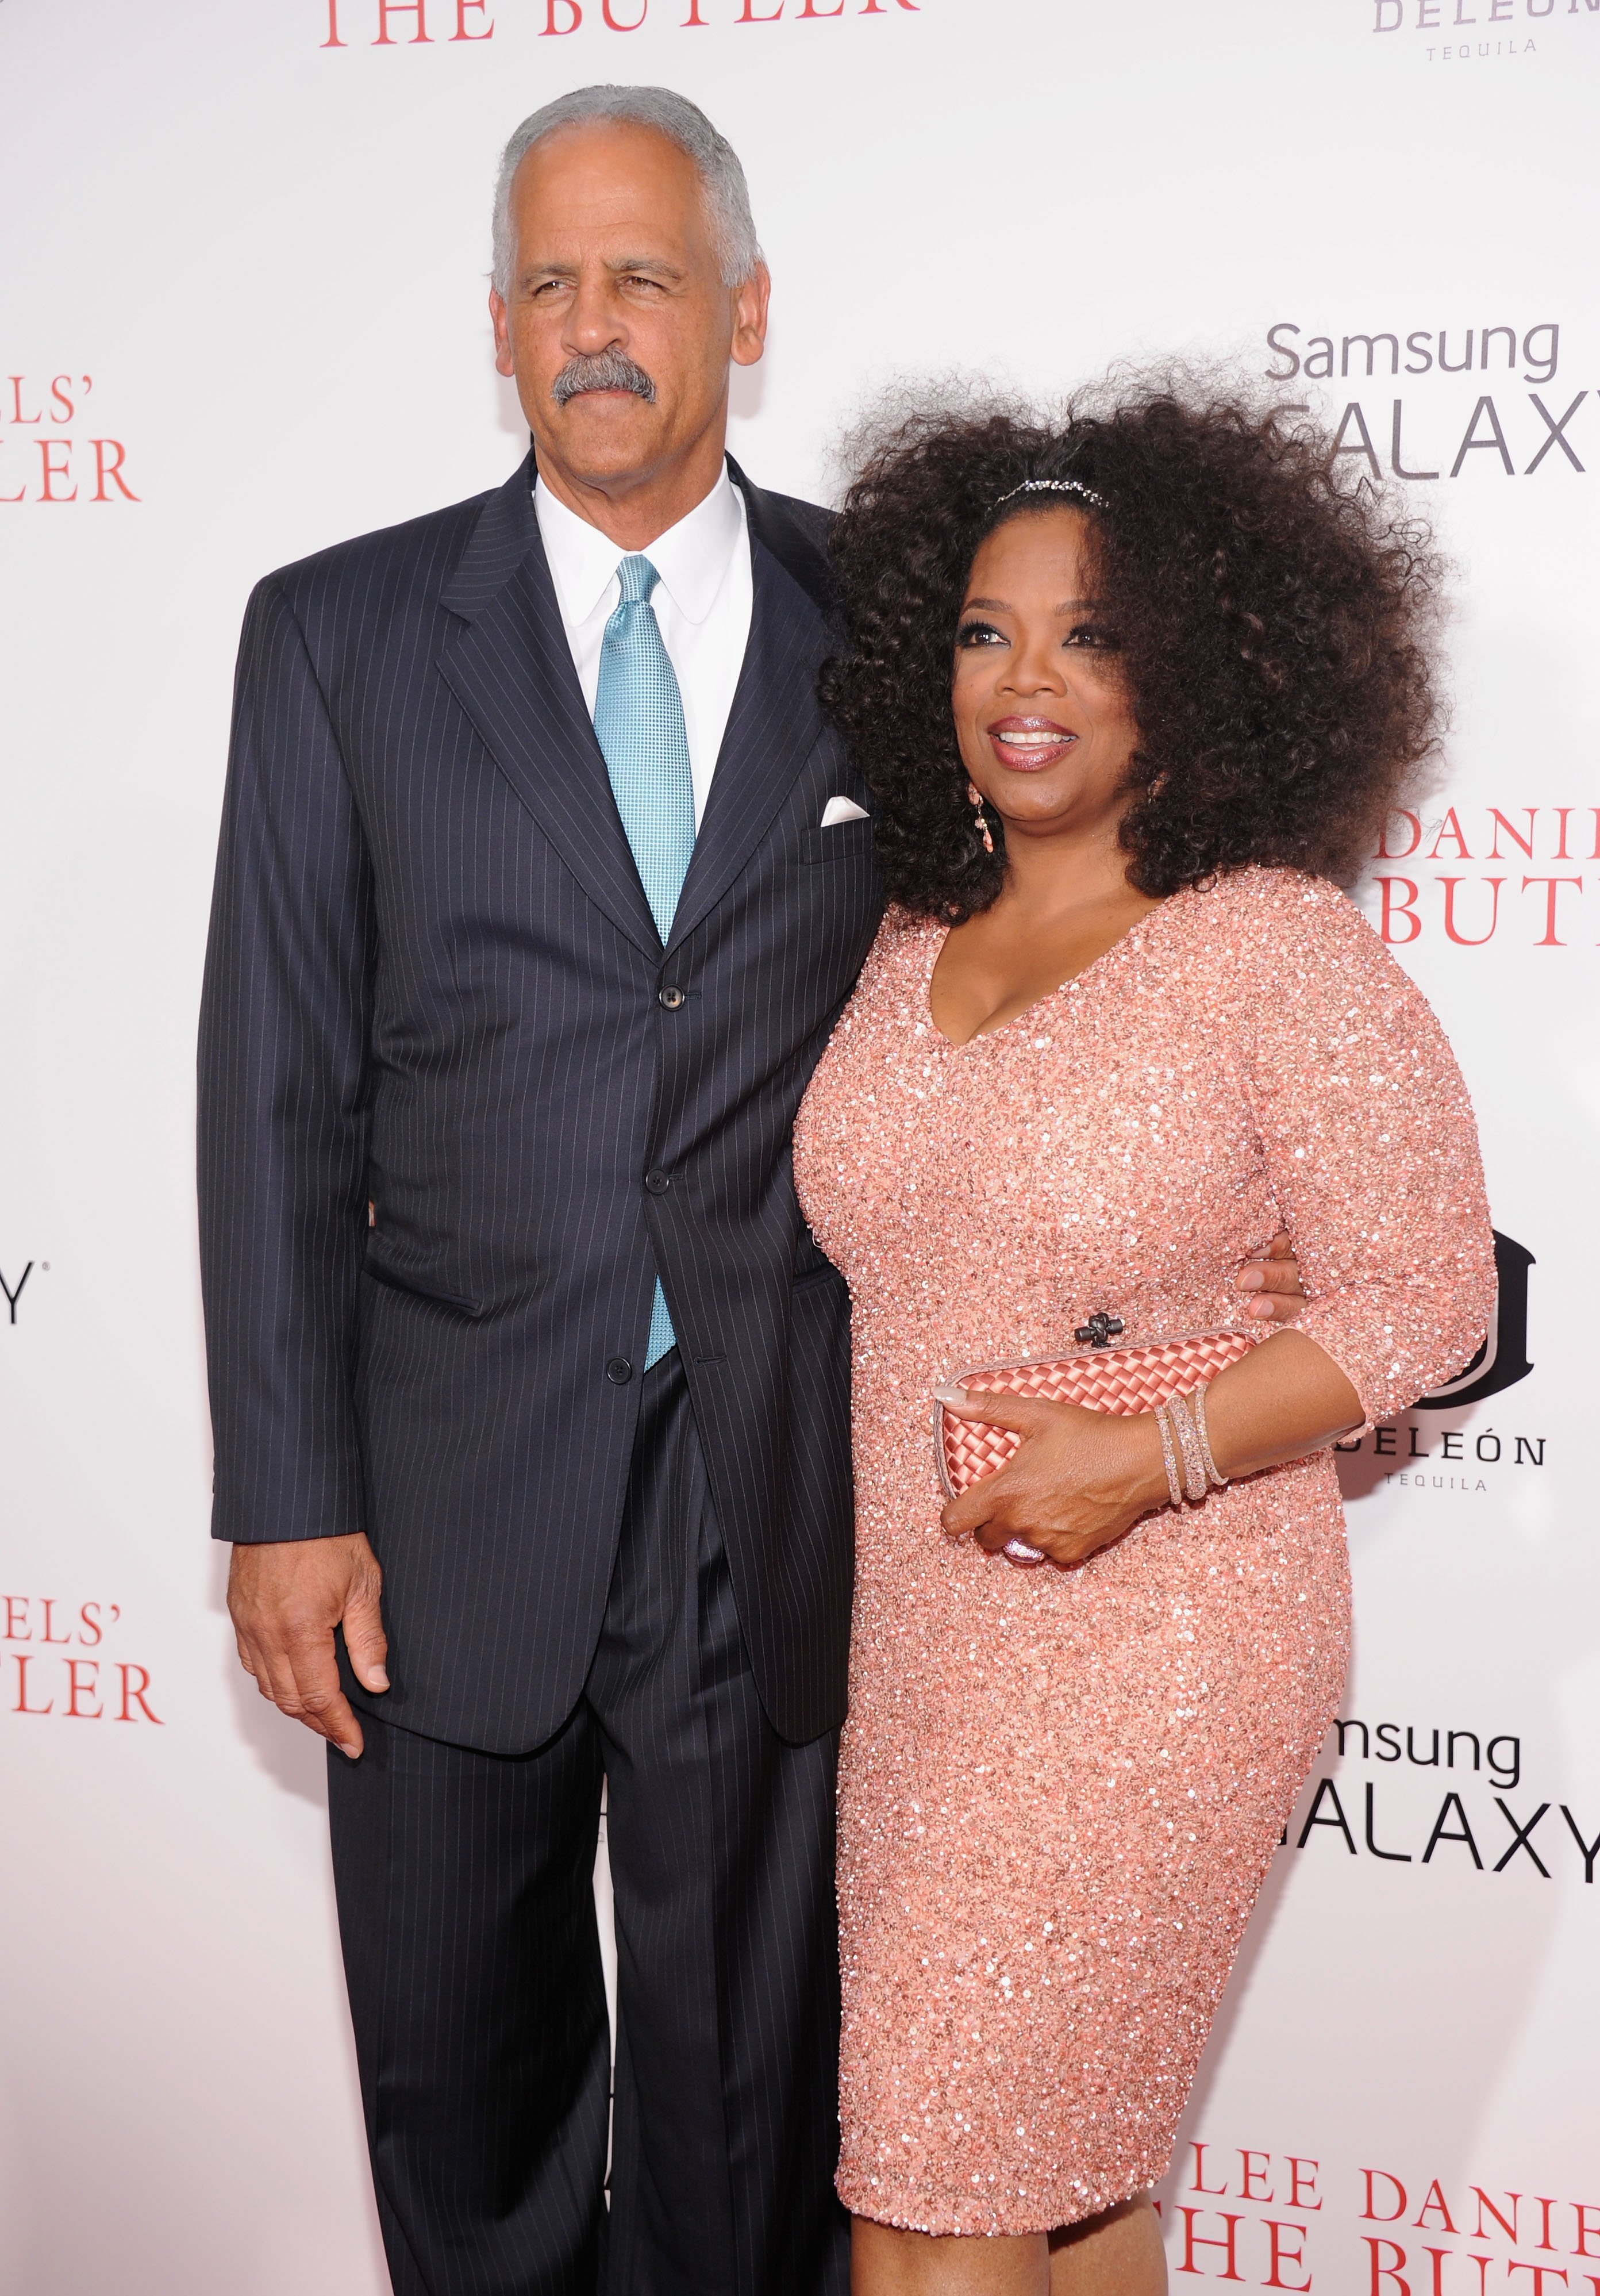 """Oprah Winfrey and Stedman Graham attend Lee Daniels' """"The Butler"""" New York Premiere at Ziegfeld Theater on August 5, 2013. 